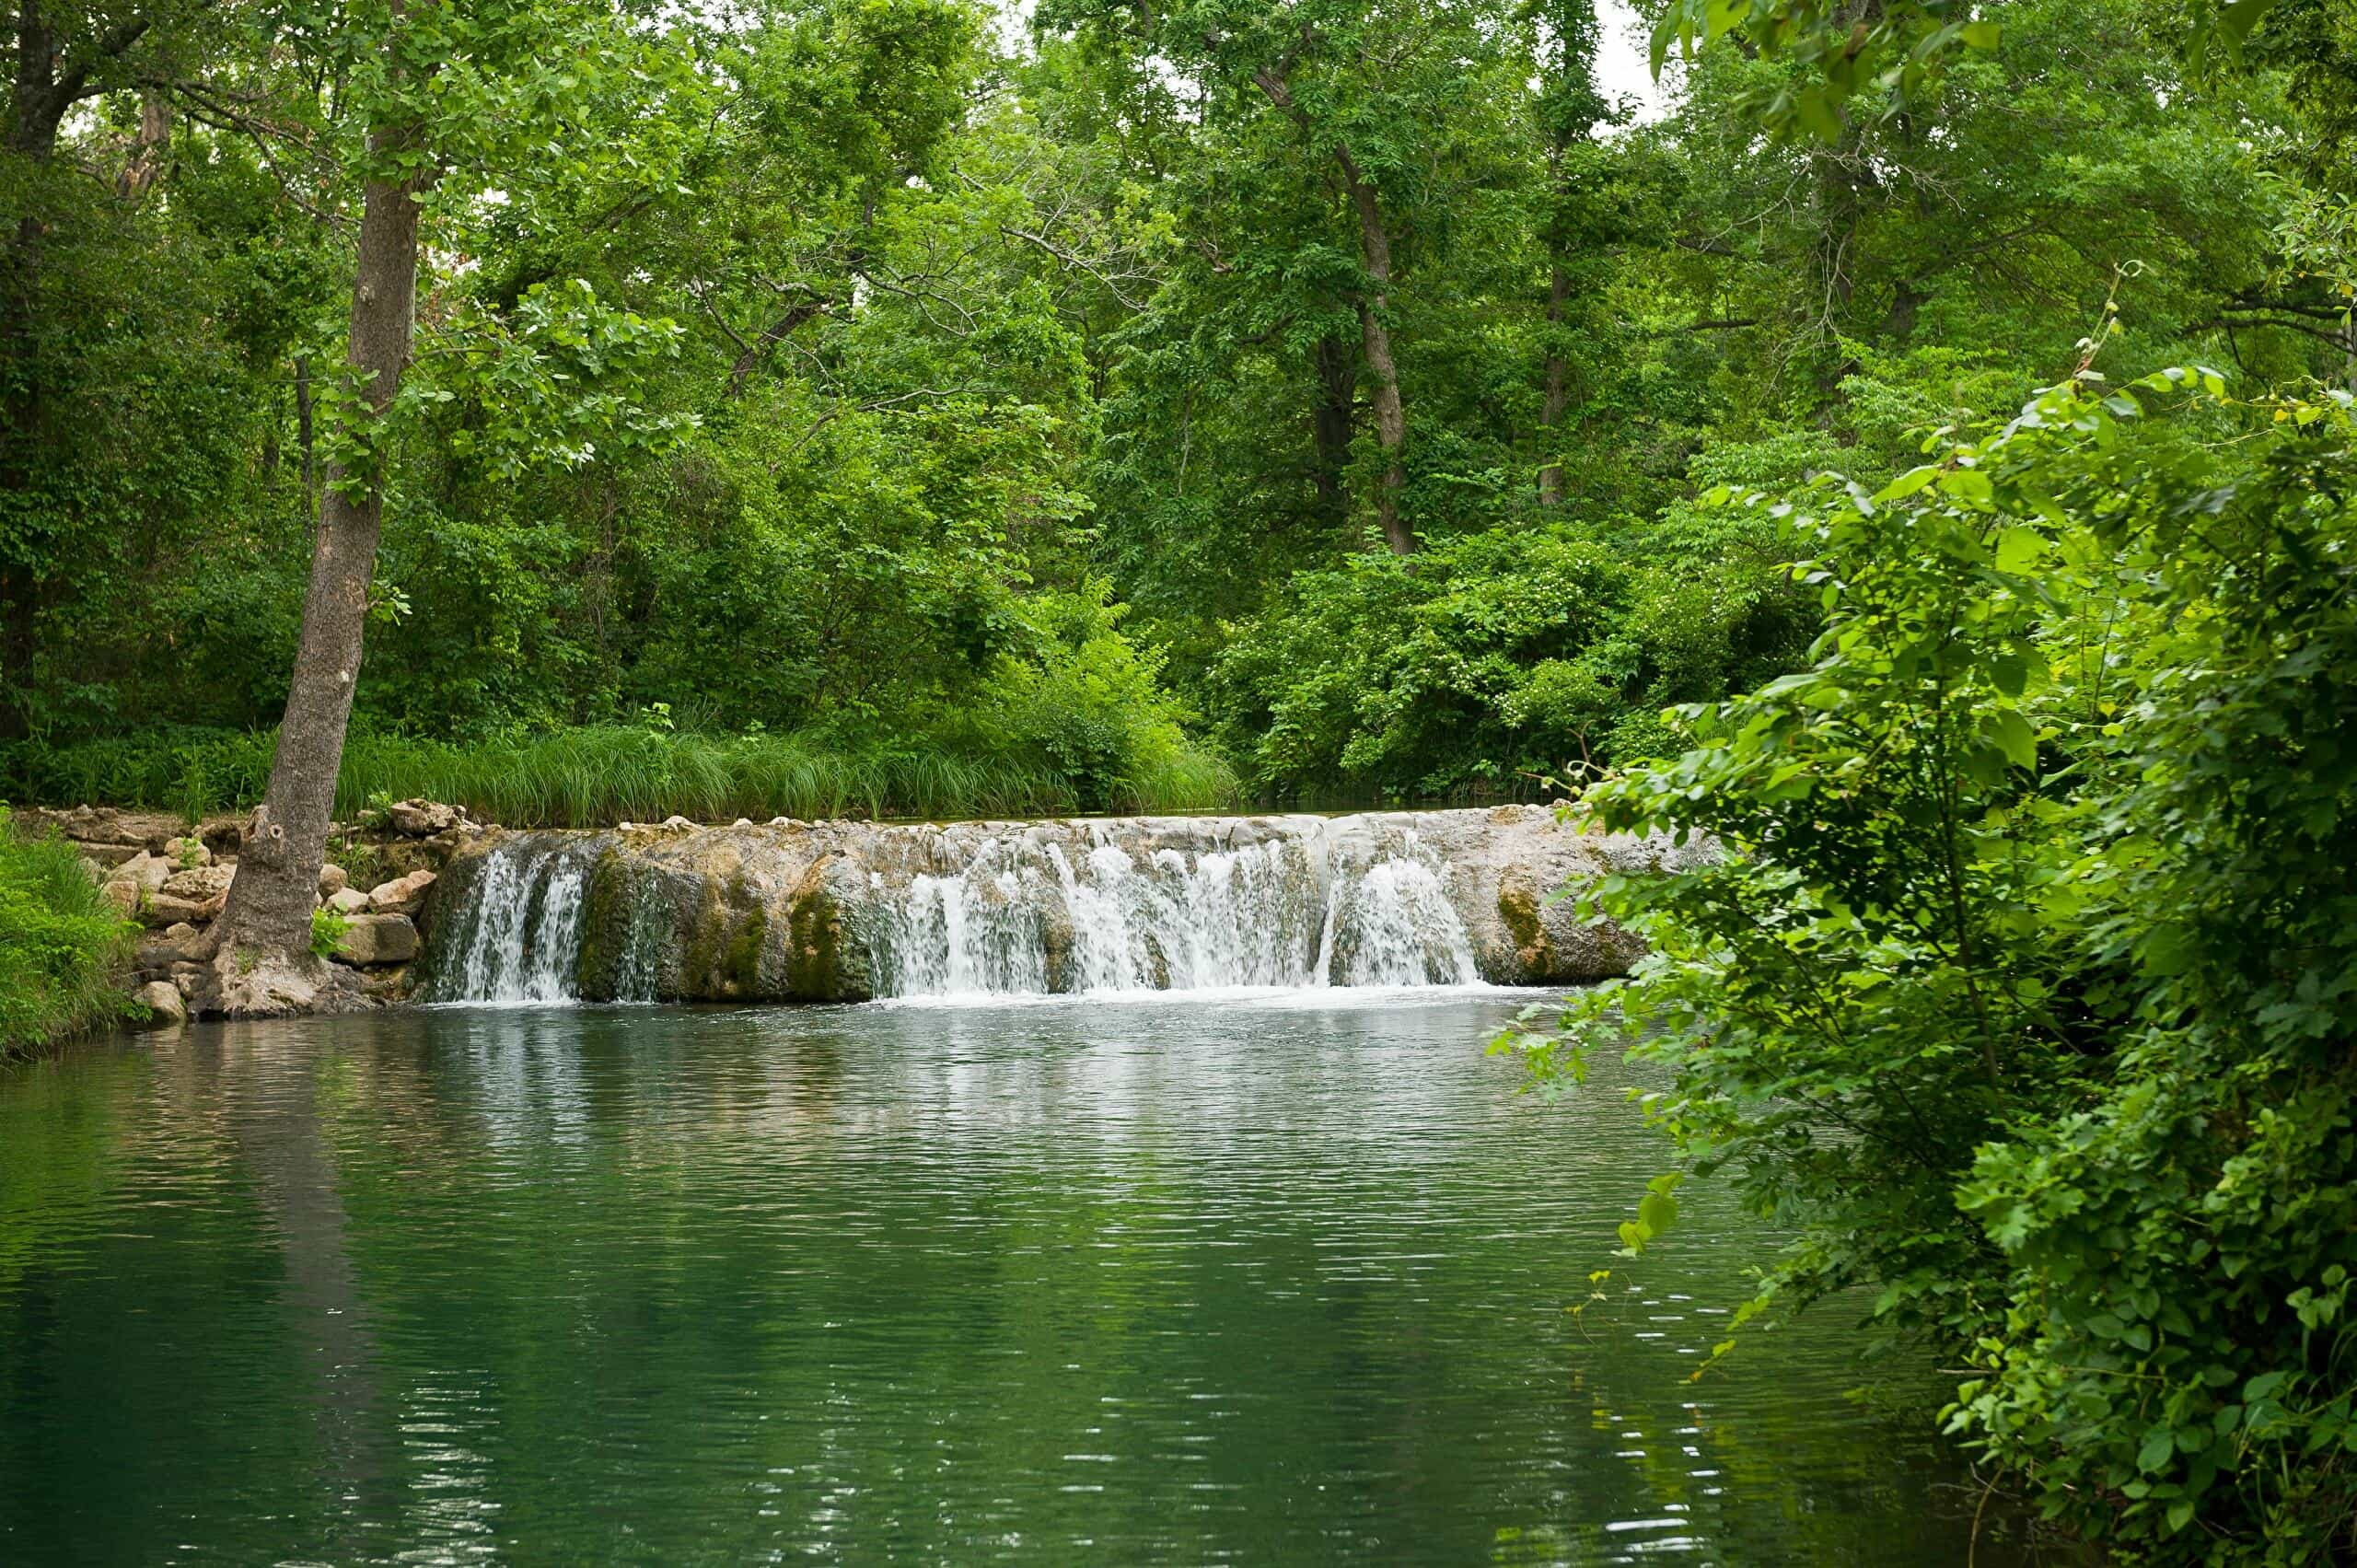 Waterfall at the Chickasaw National Recreation Area in Sulphur, Oklahoma